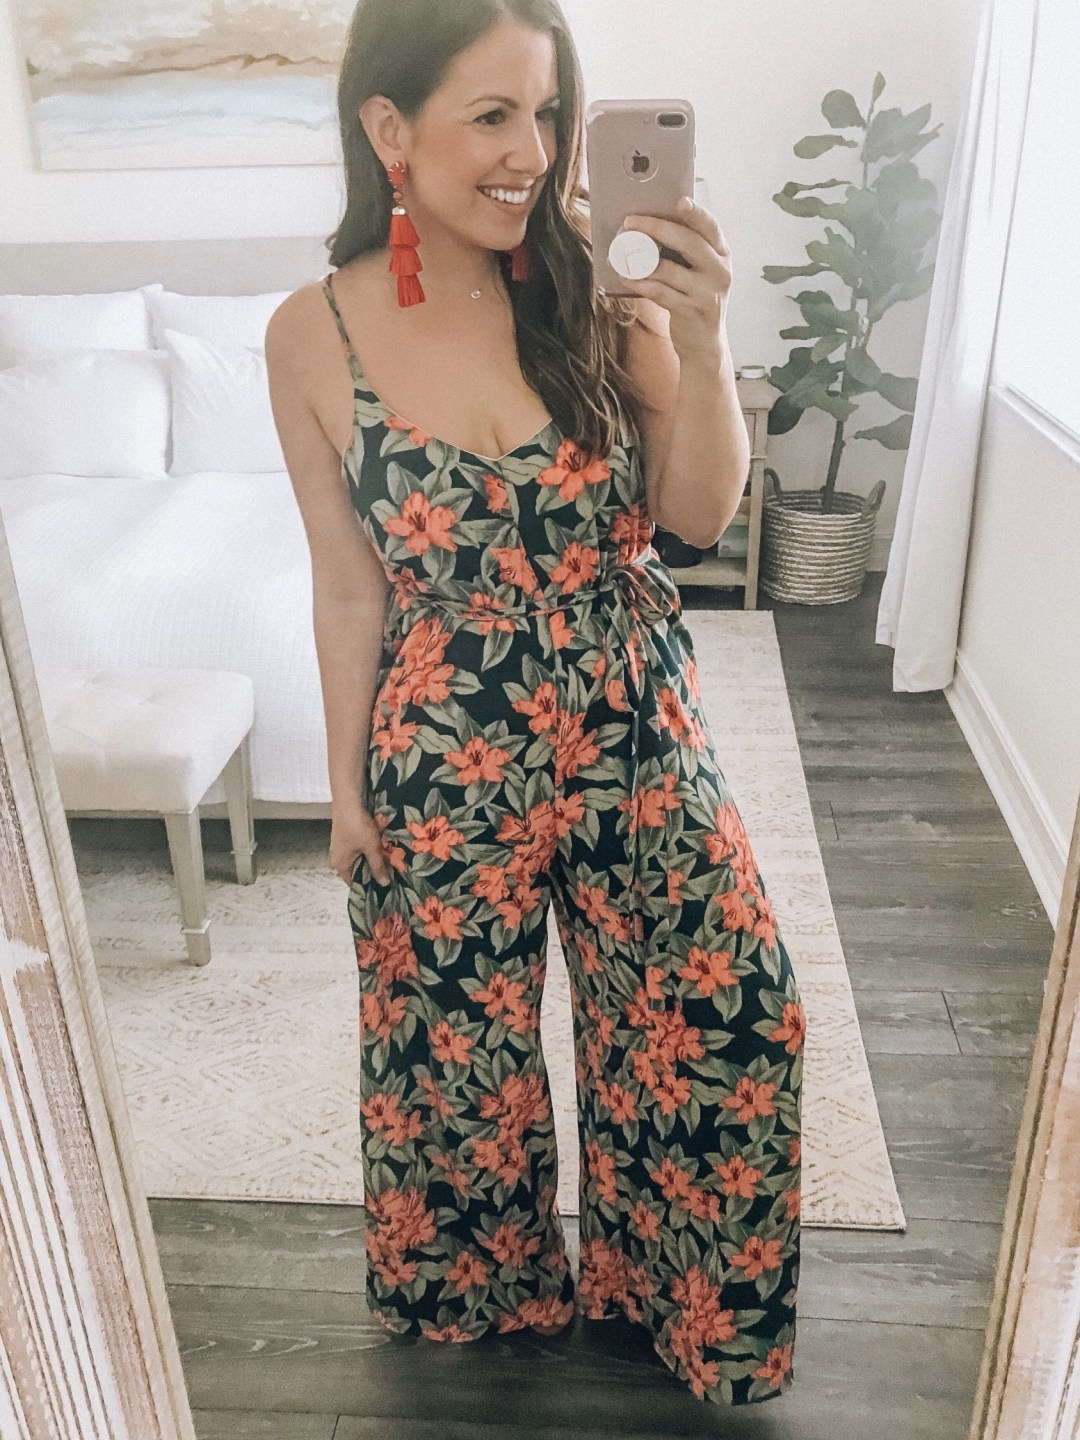 Jungle Jumpsuit, Vacation Style Jumpsuit, Affordable Cute Jumpsuit, Red Dress Boutique